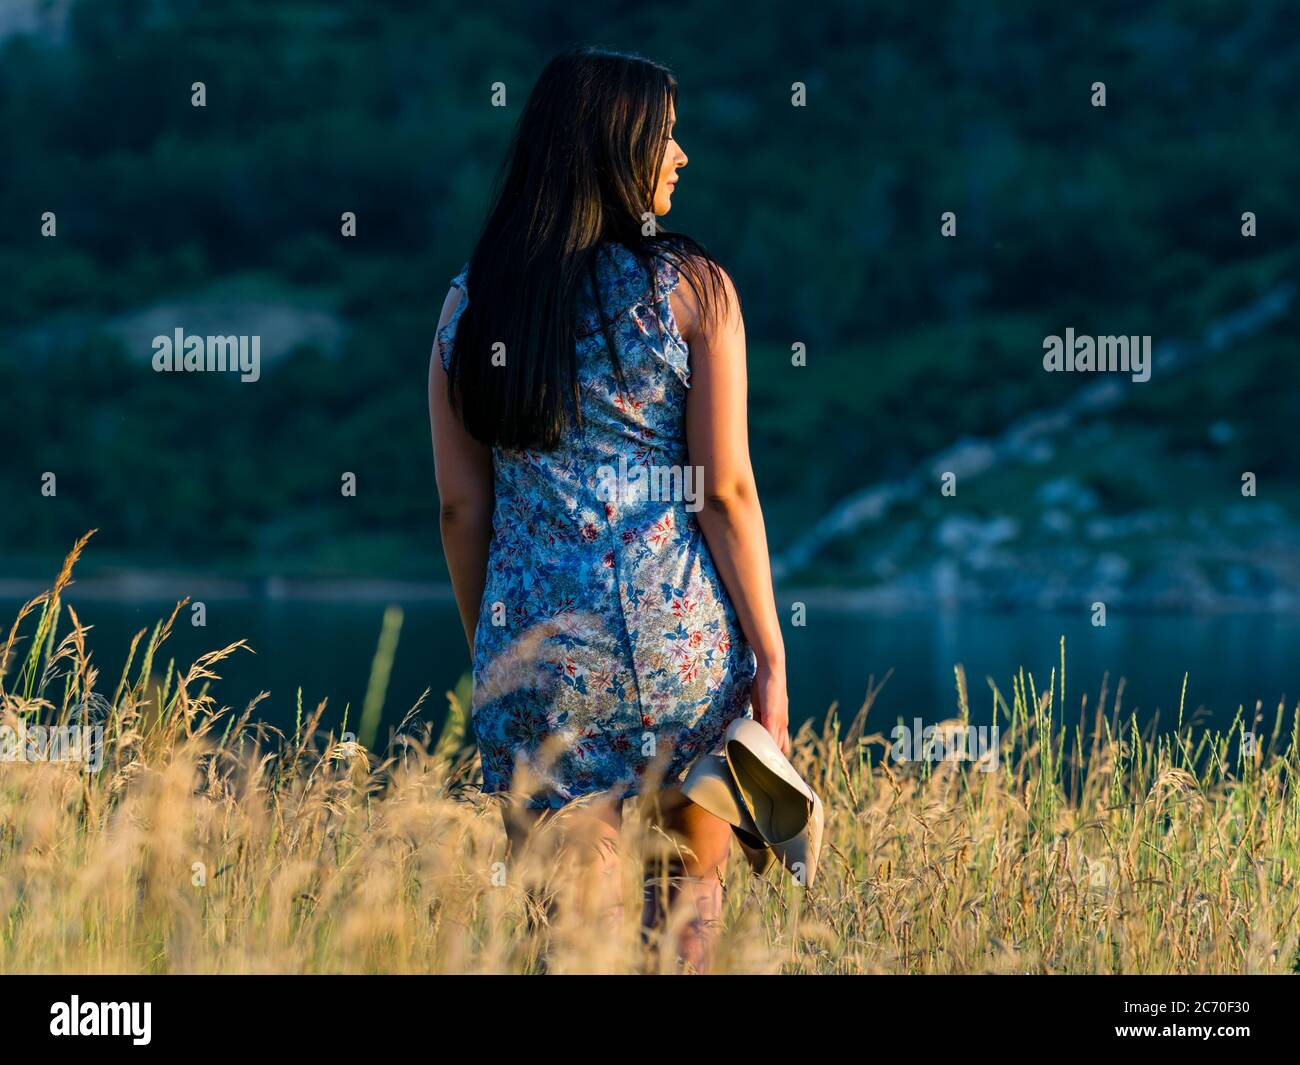 Aka young woman with high heels in hand walking going away in nature getaway runaway looking watching warm sunset in distance away aside Stock Photo